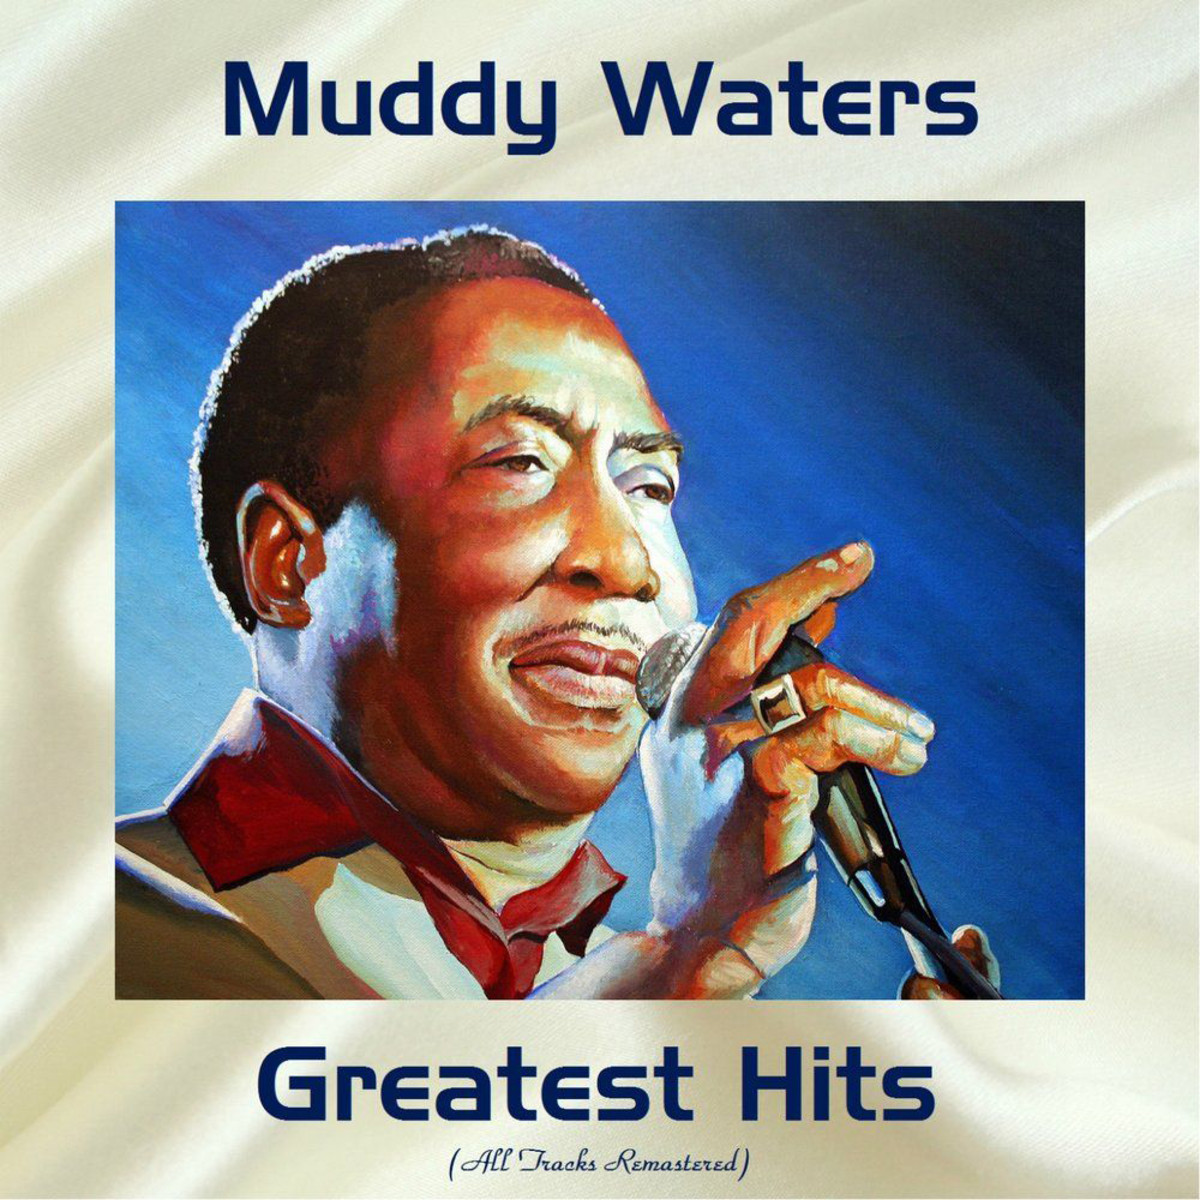 Muddy-Waters-Greatest-Hits-All-Tracks-Remastered-cover